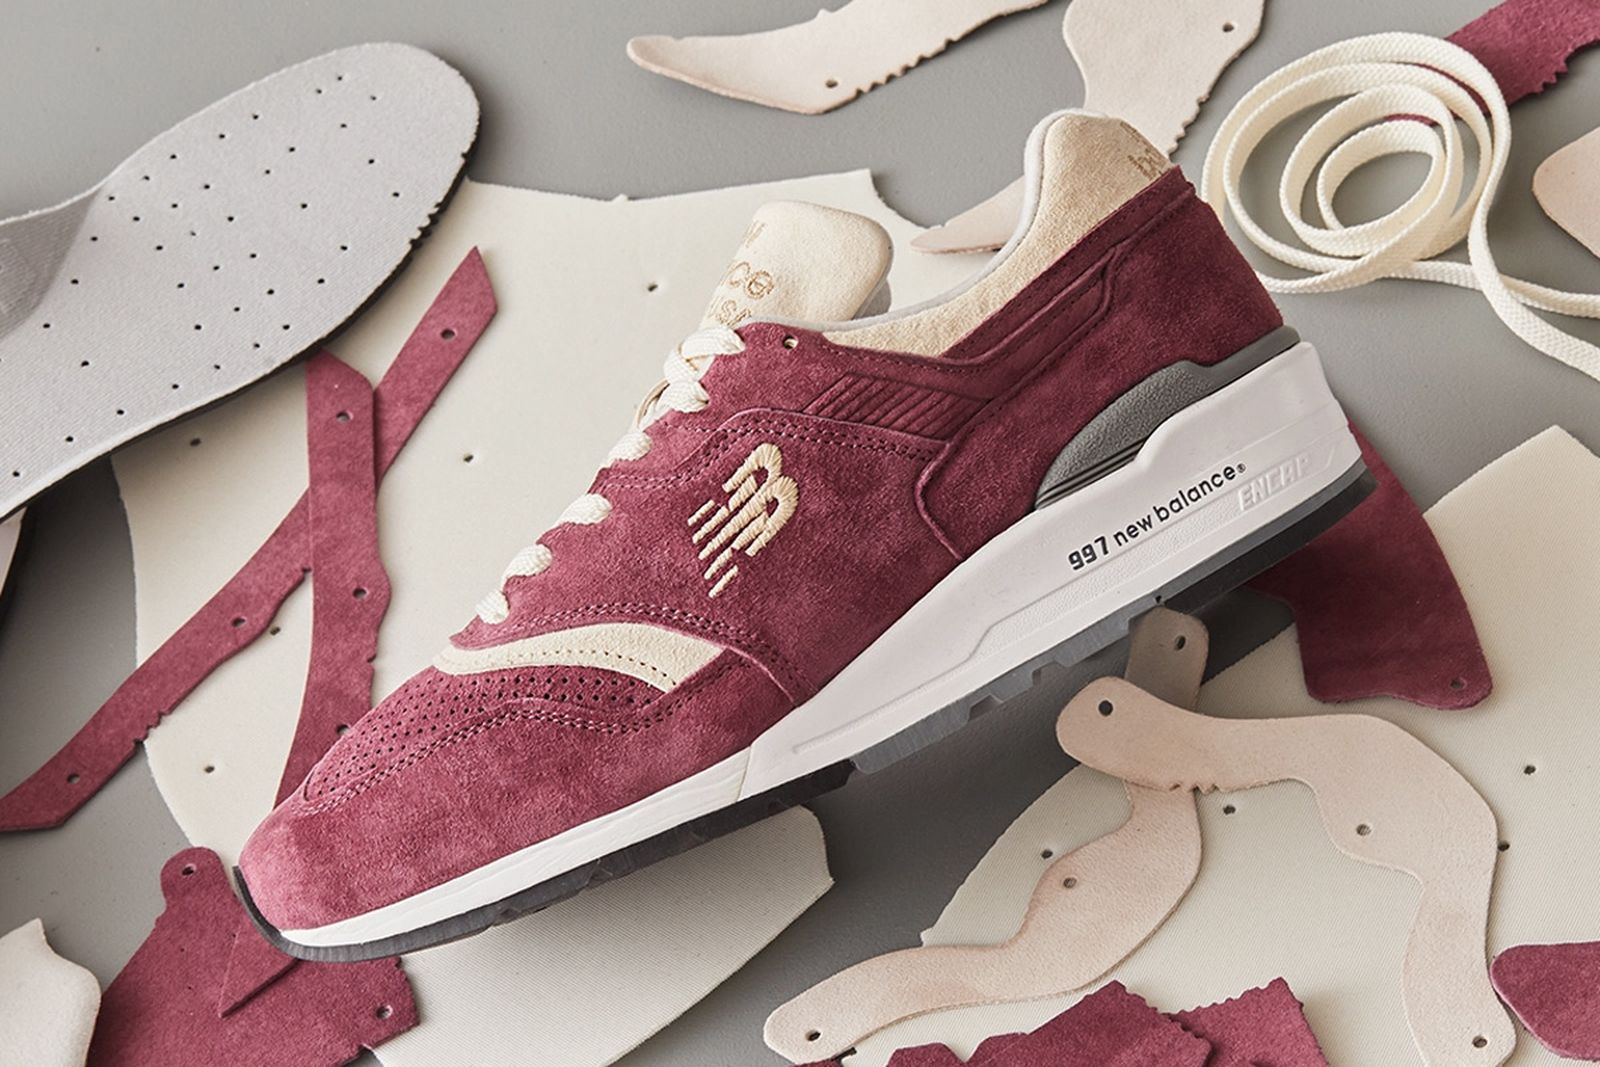 todd-snyder-new-balance-triborough-997-release-date-price-04